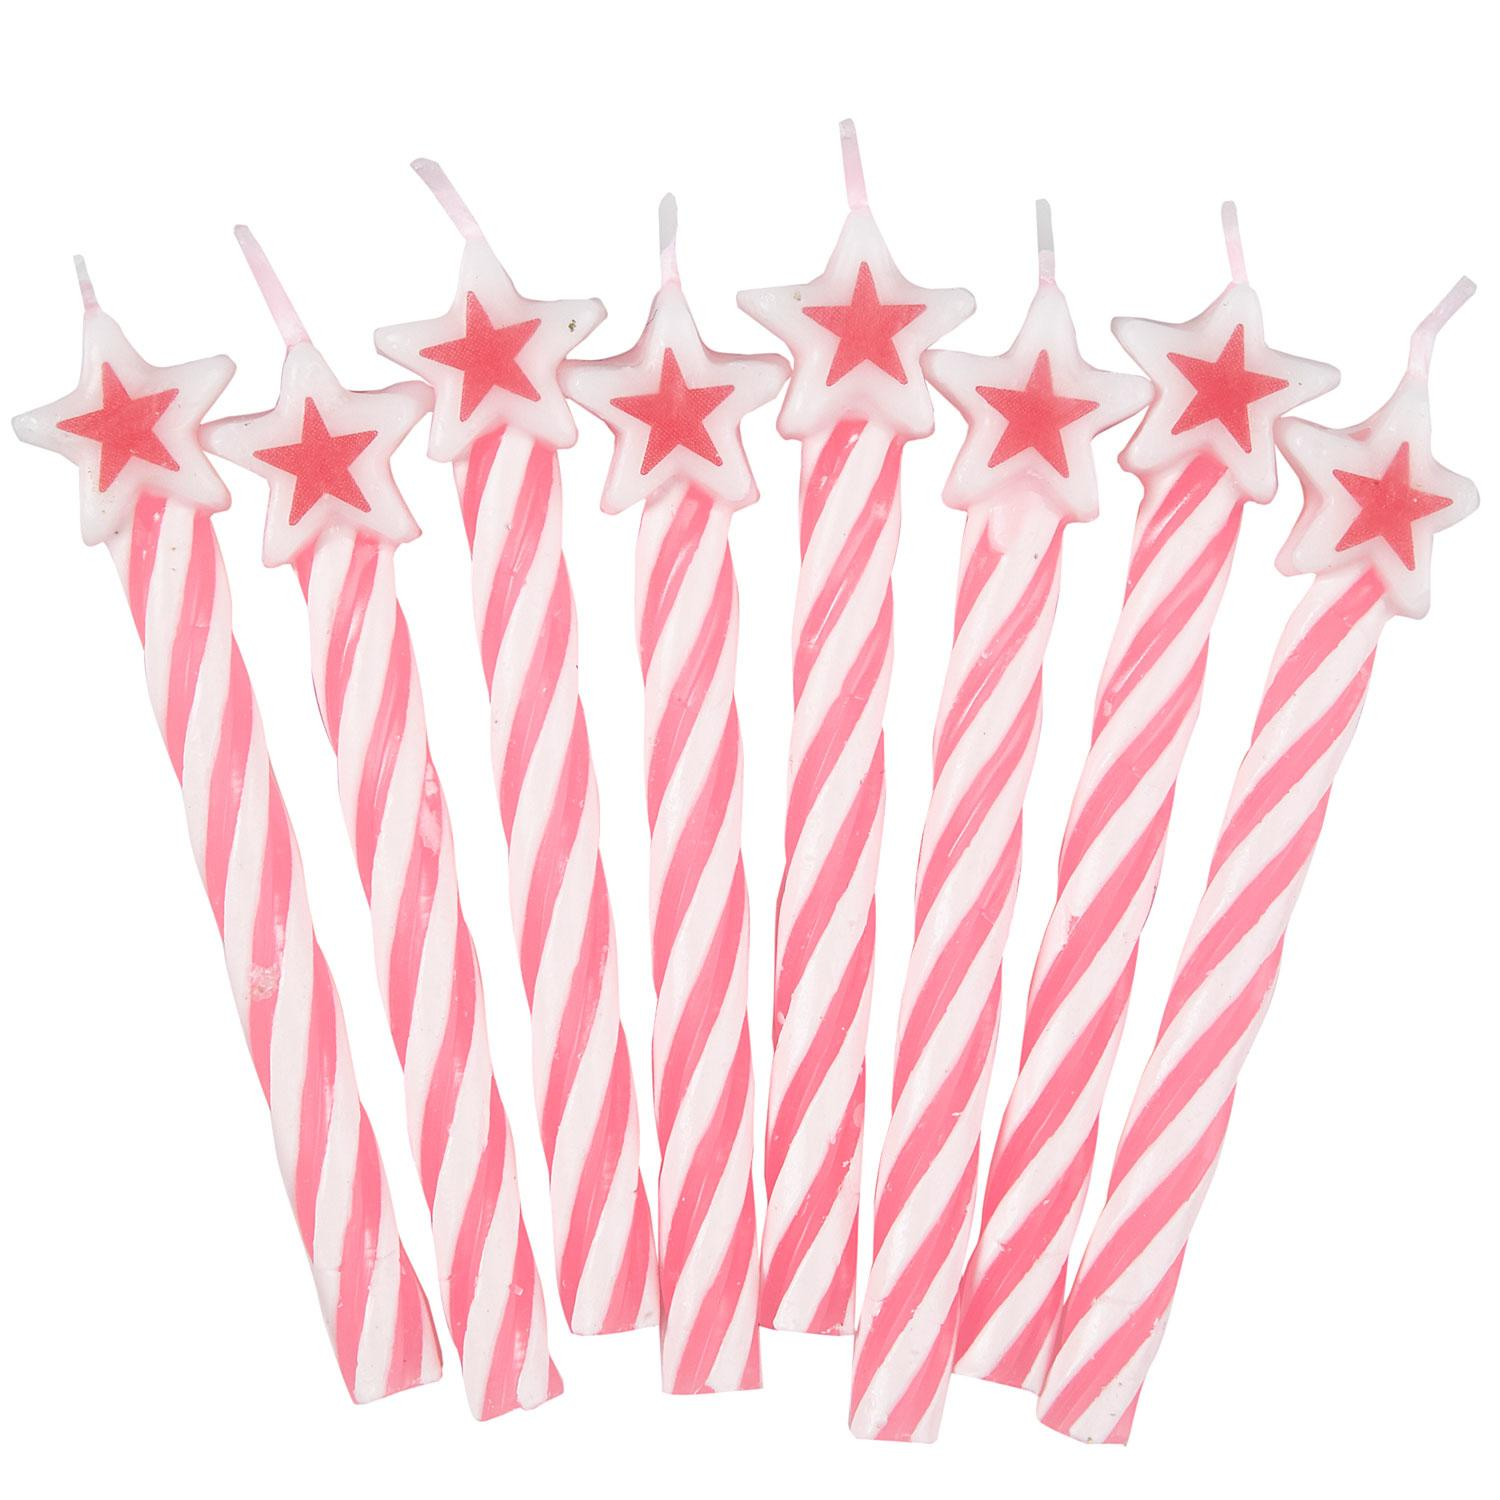 Star Candles Pink